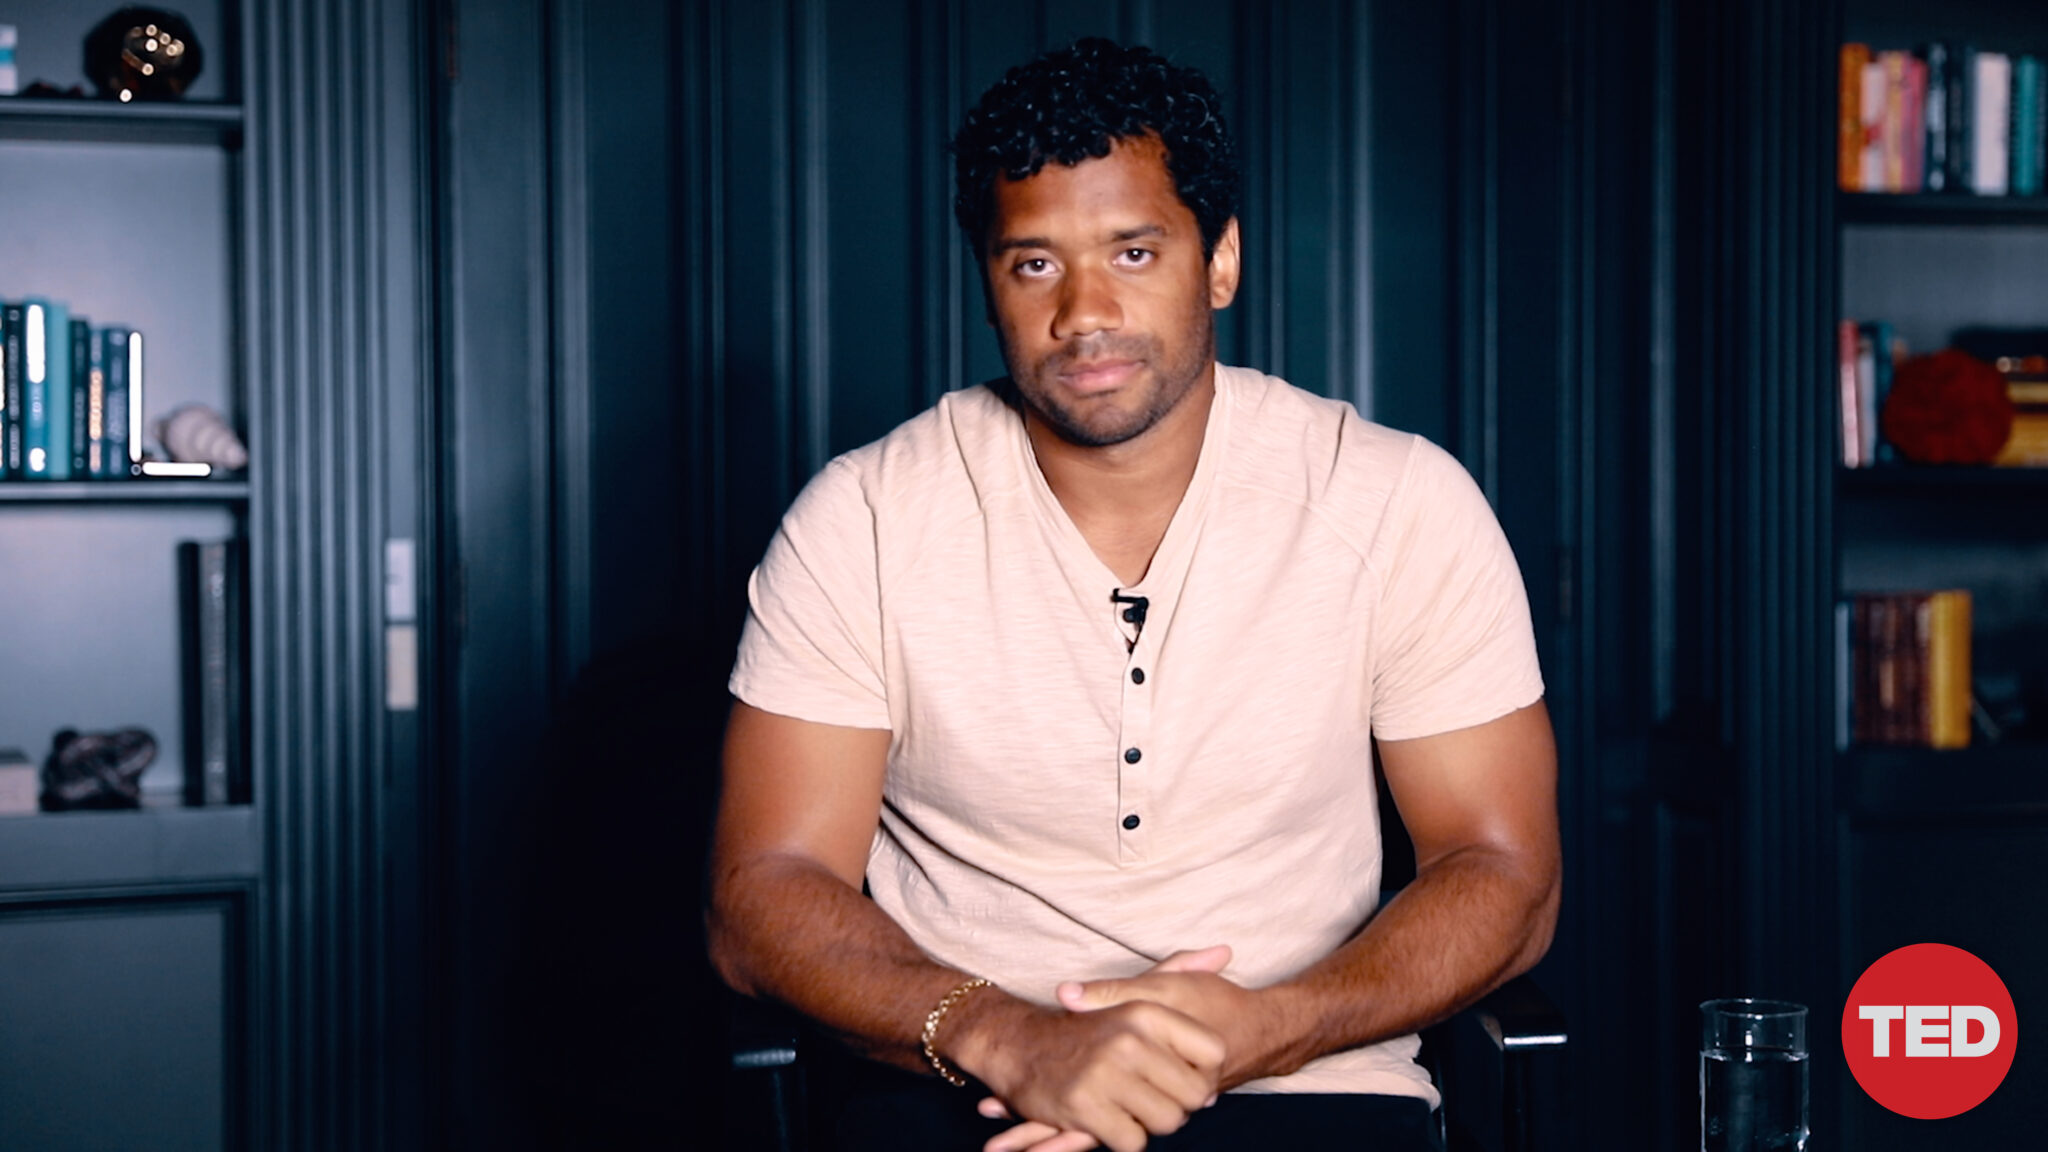 In new TED Talk, Seahawks QB Russell Wilson promotes 'neutral thinking' to cope with pressure